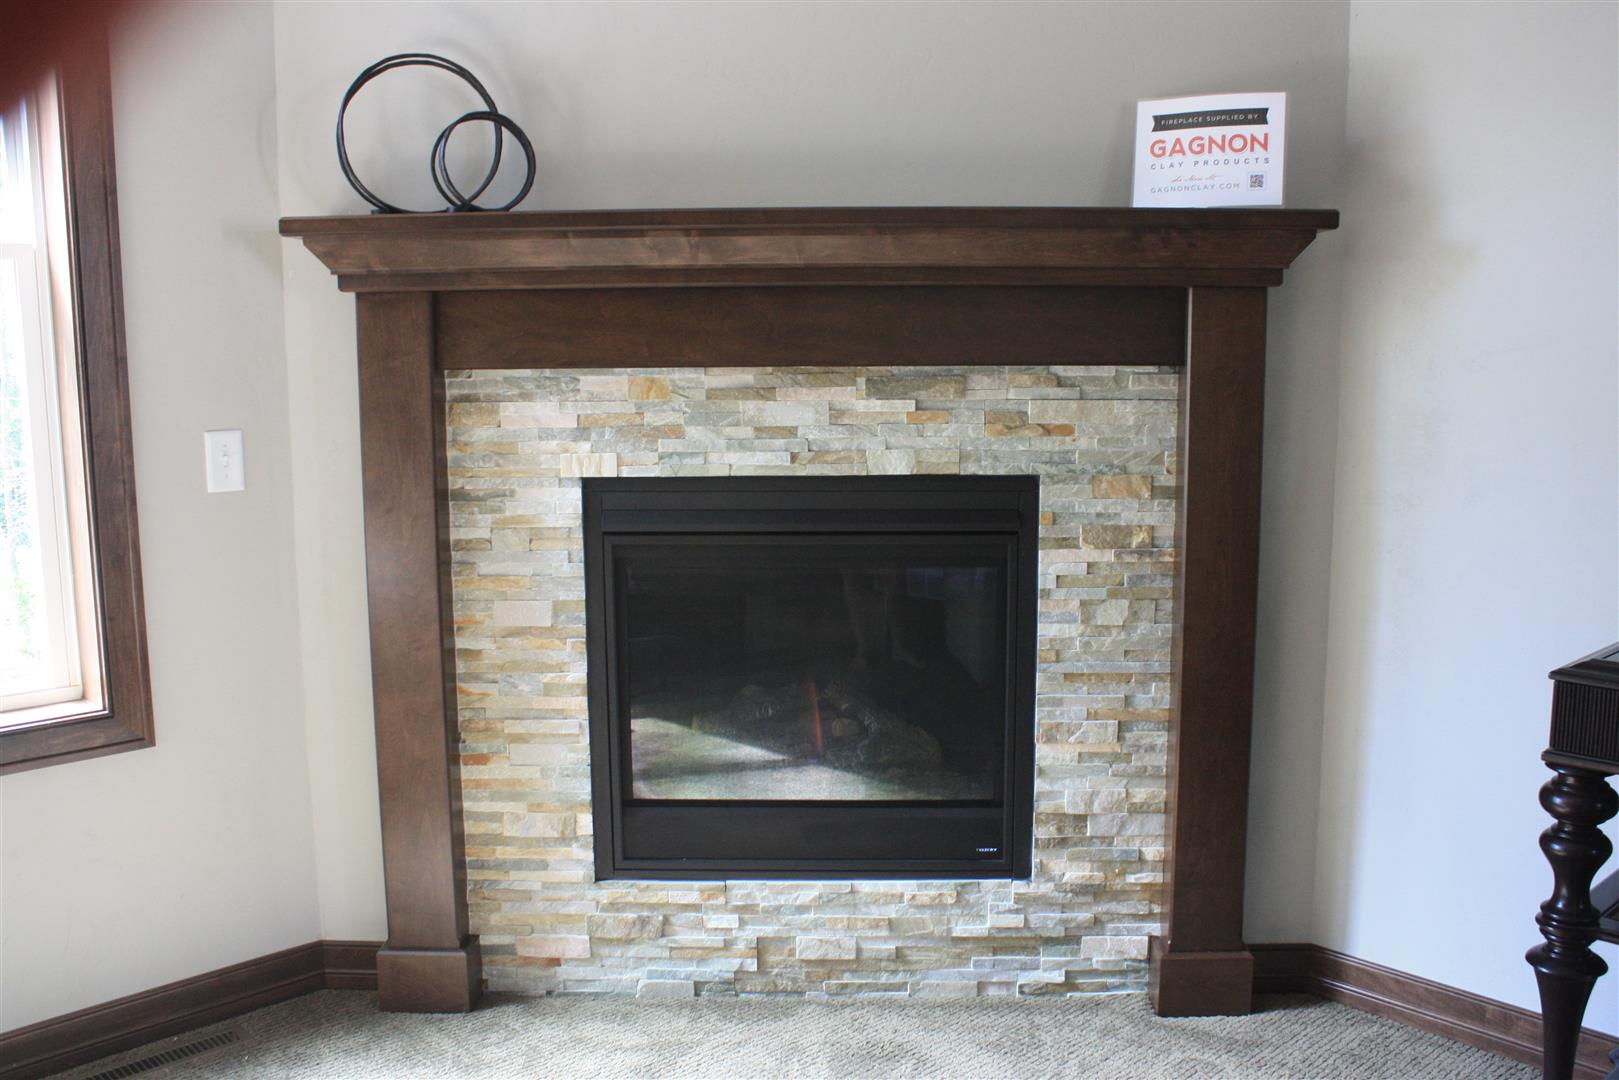 Fireplace Repair Nashville Tn Fireplace Repair Fireplace Repair Green Bay Wi